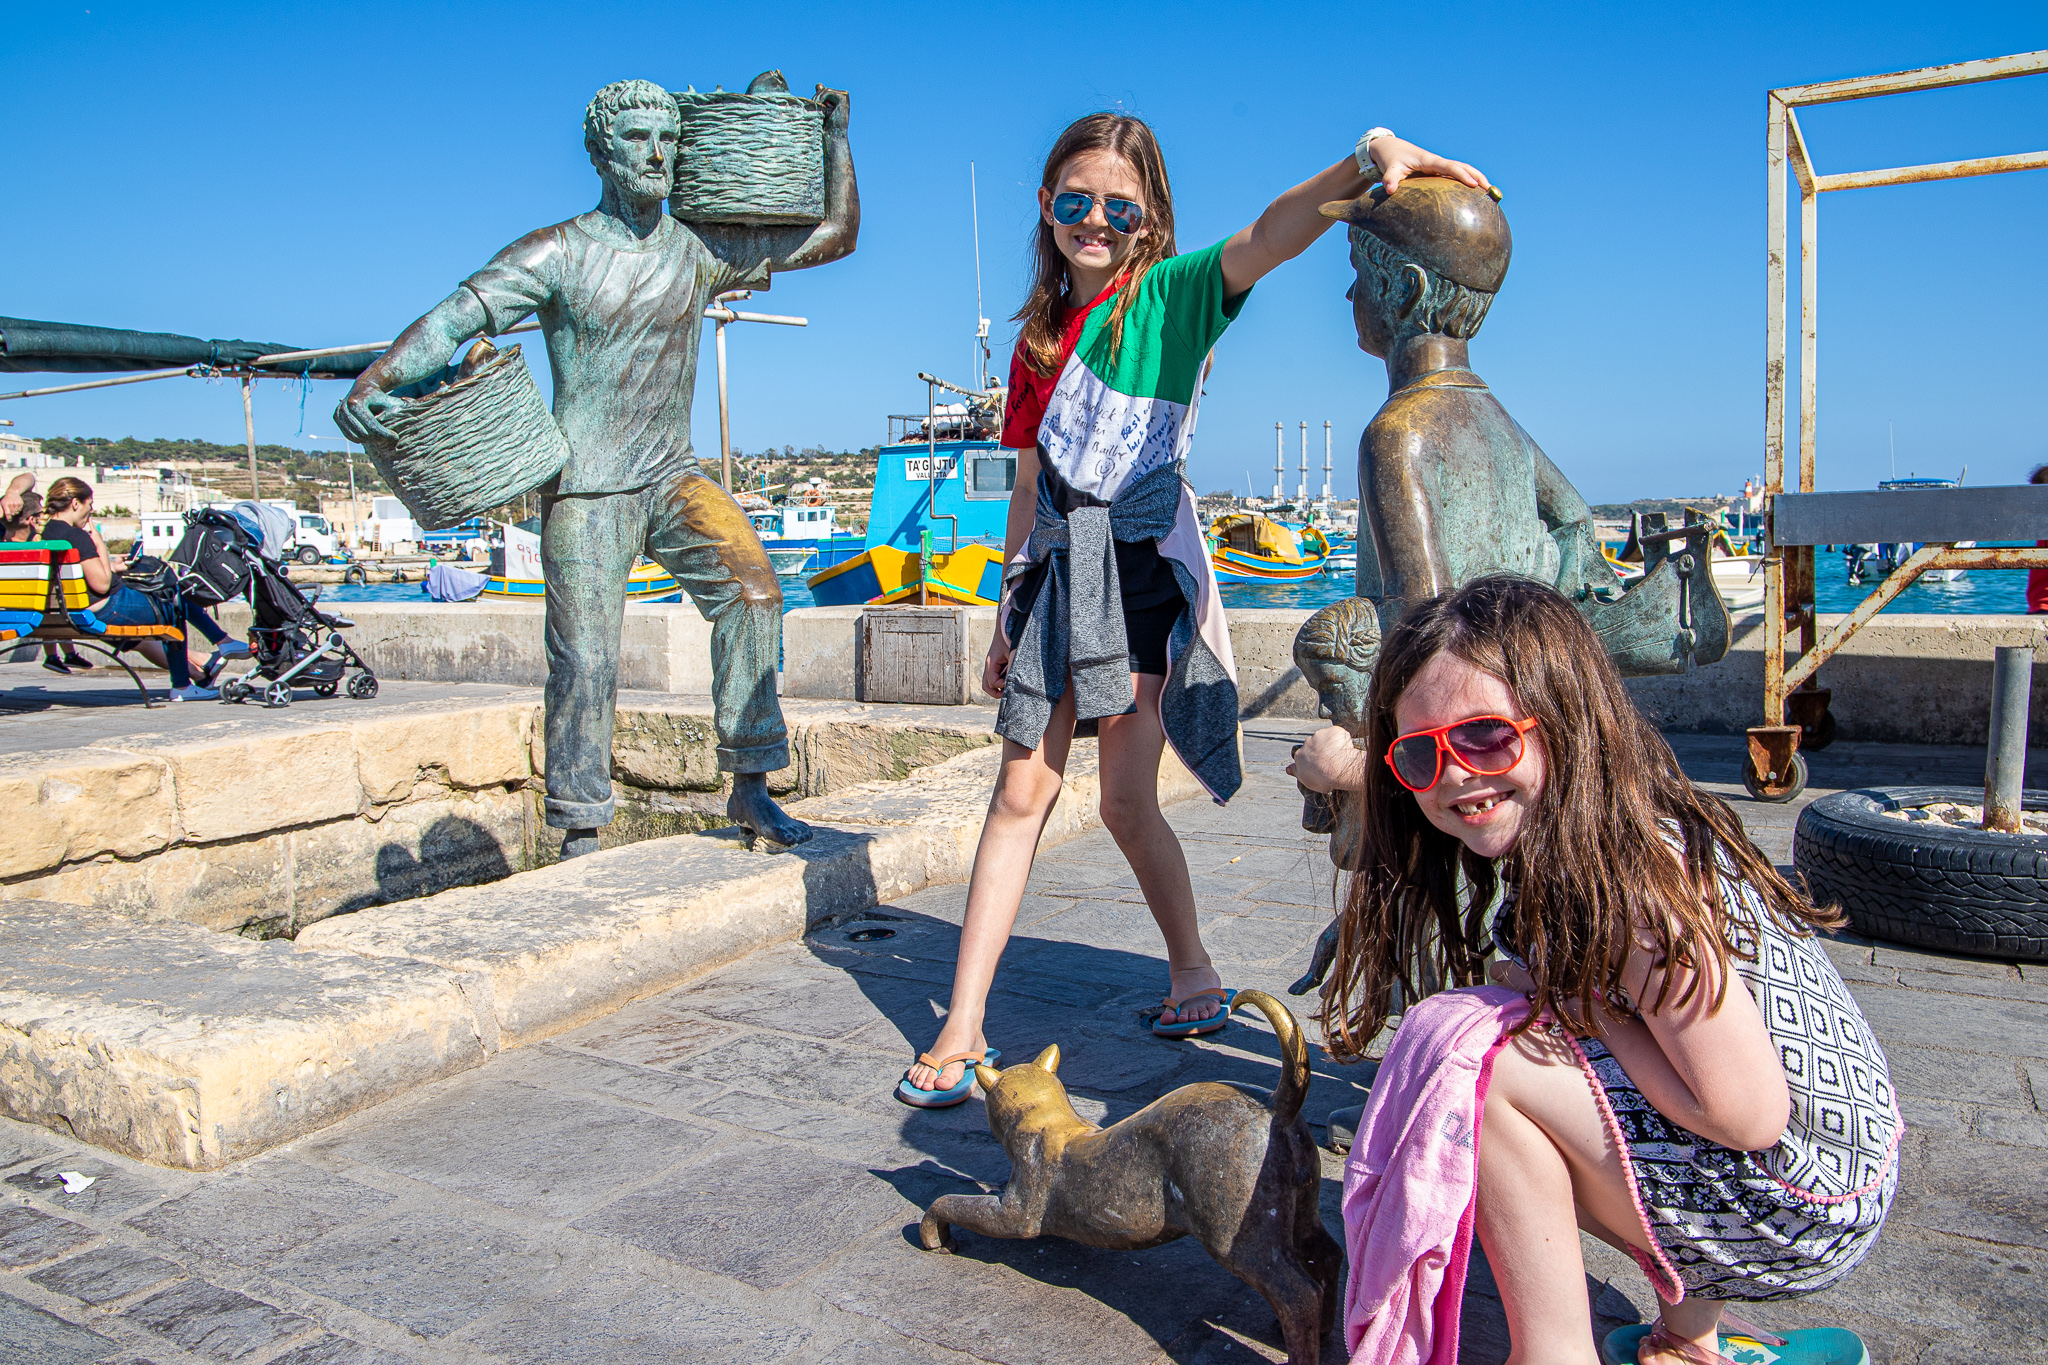 The girls playing with their bronzed friends on the waterfront